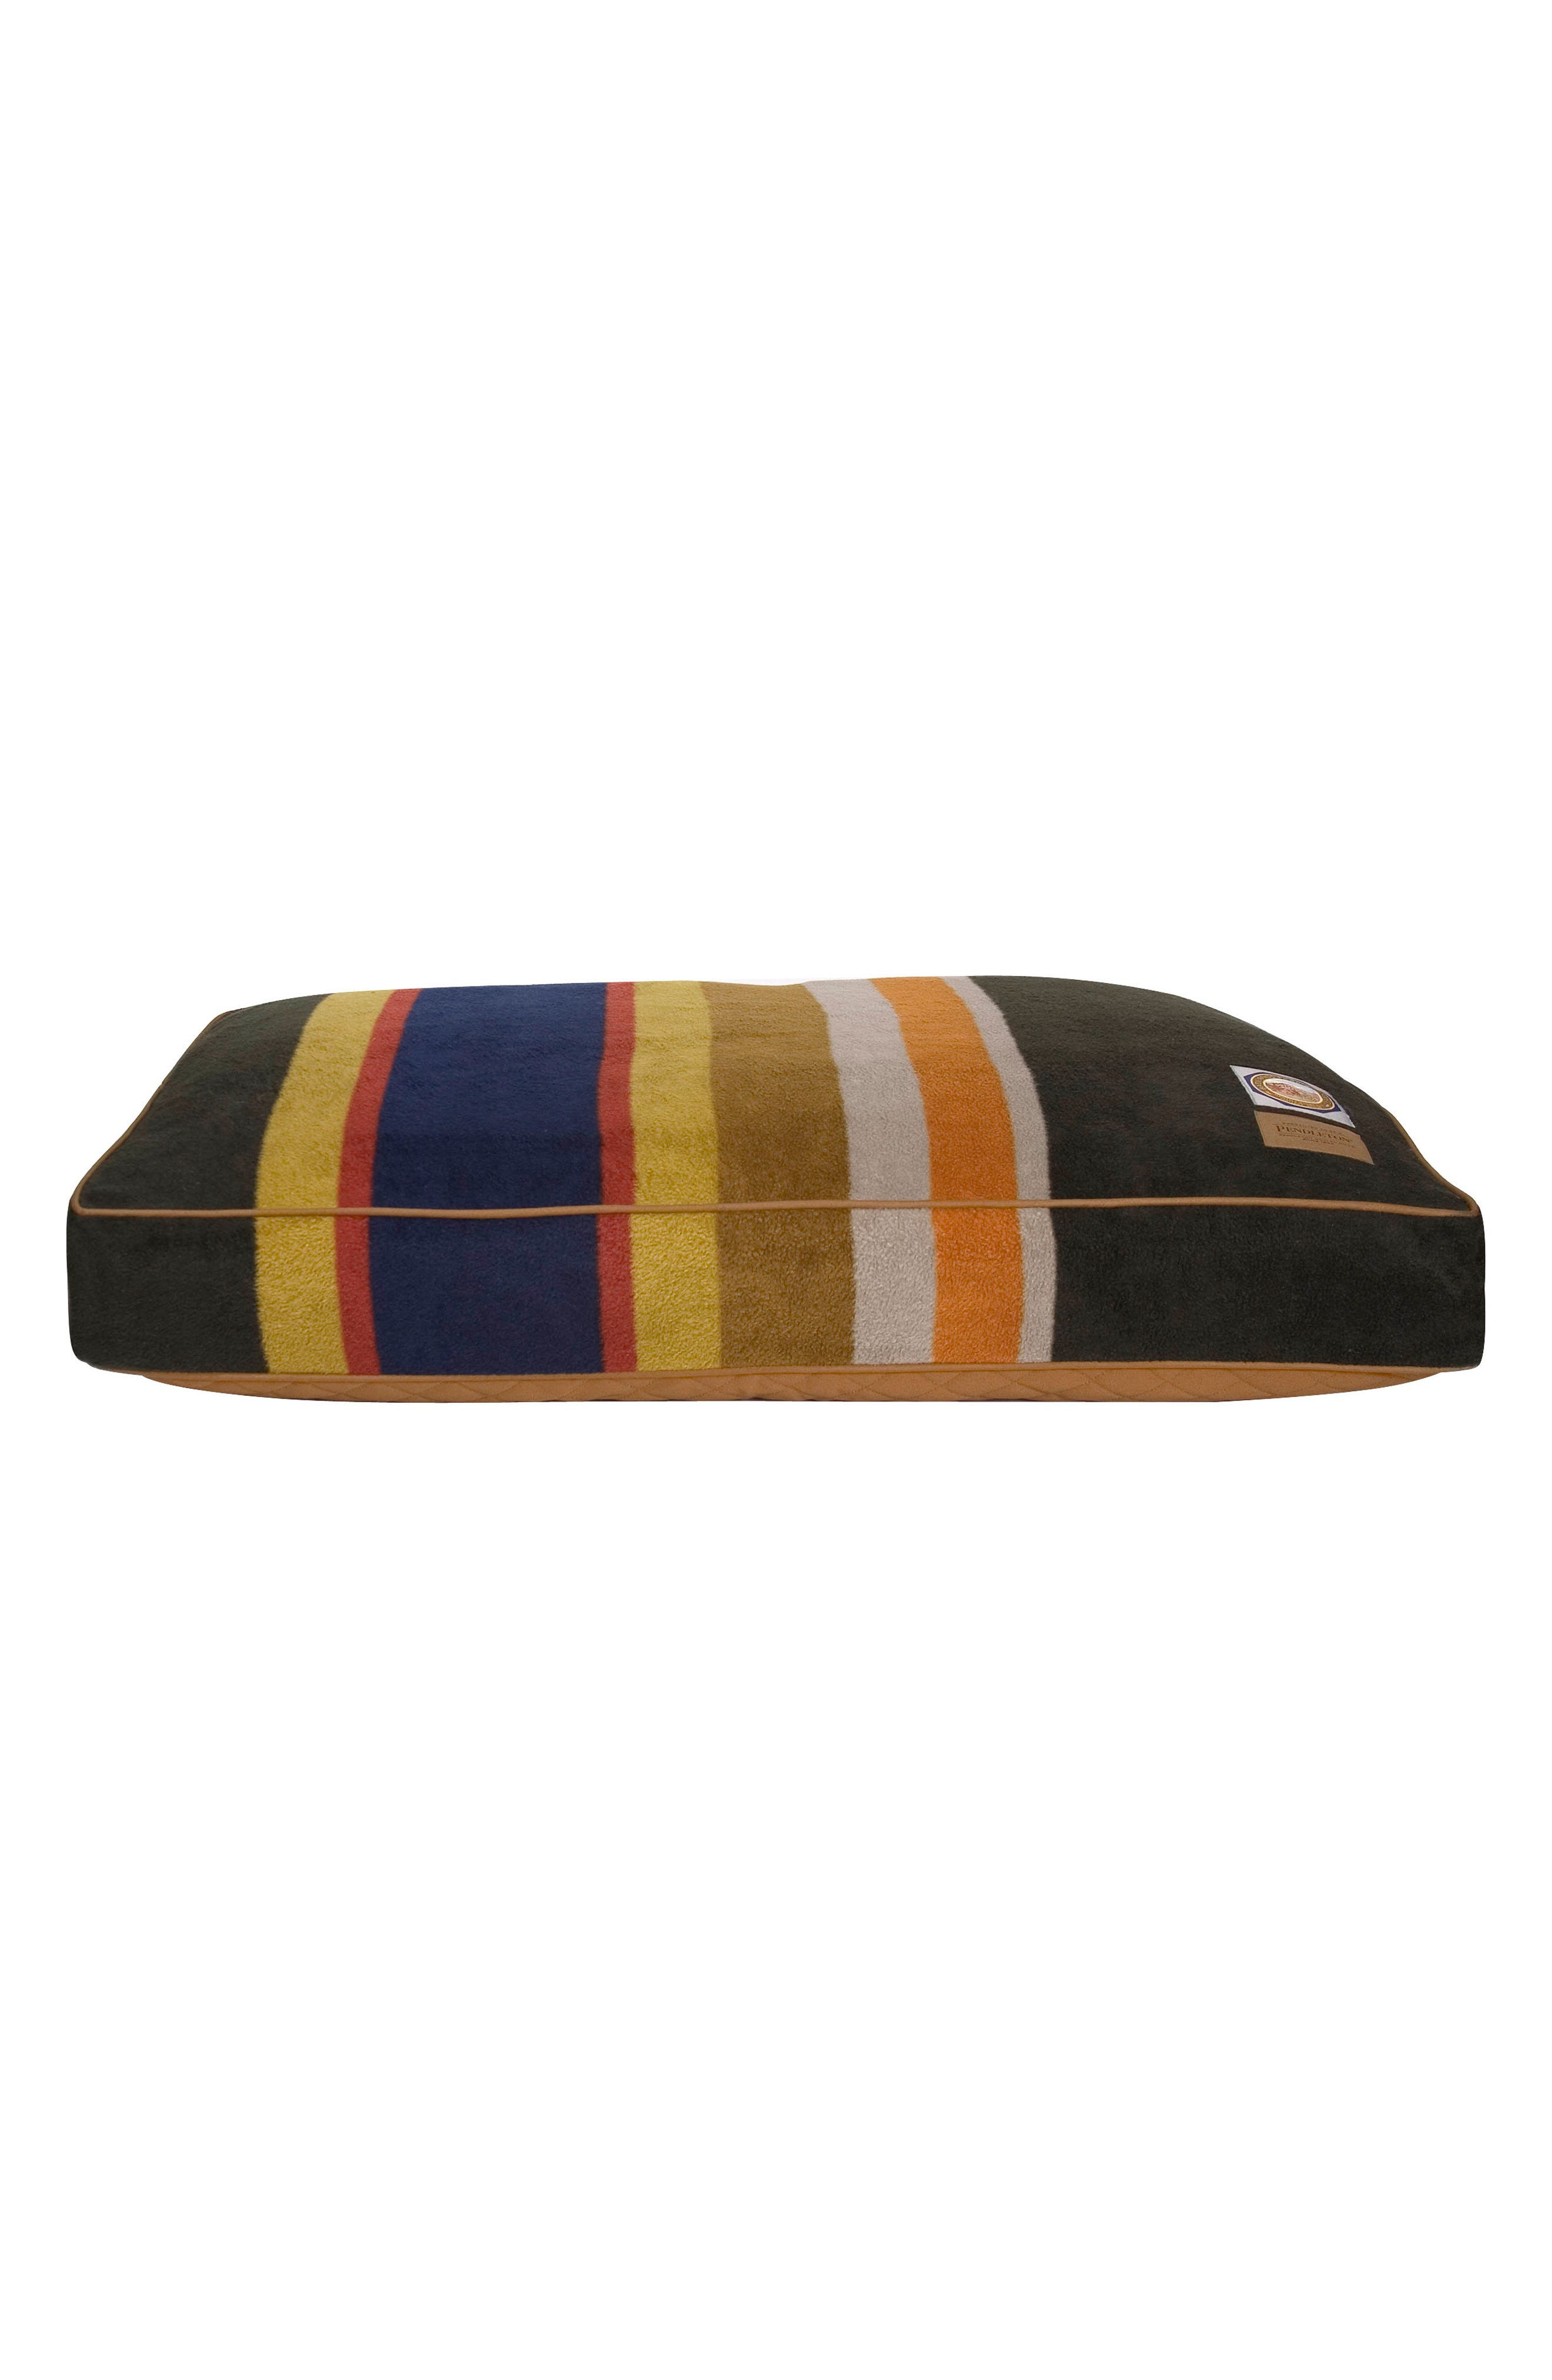 x Pendleton Acadia National Park Pet Bed,                             Main thumbnail 1, color,                             ACADIA